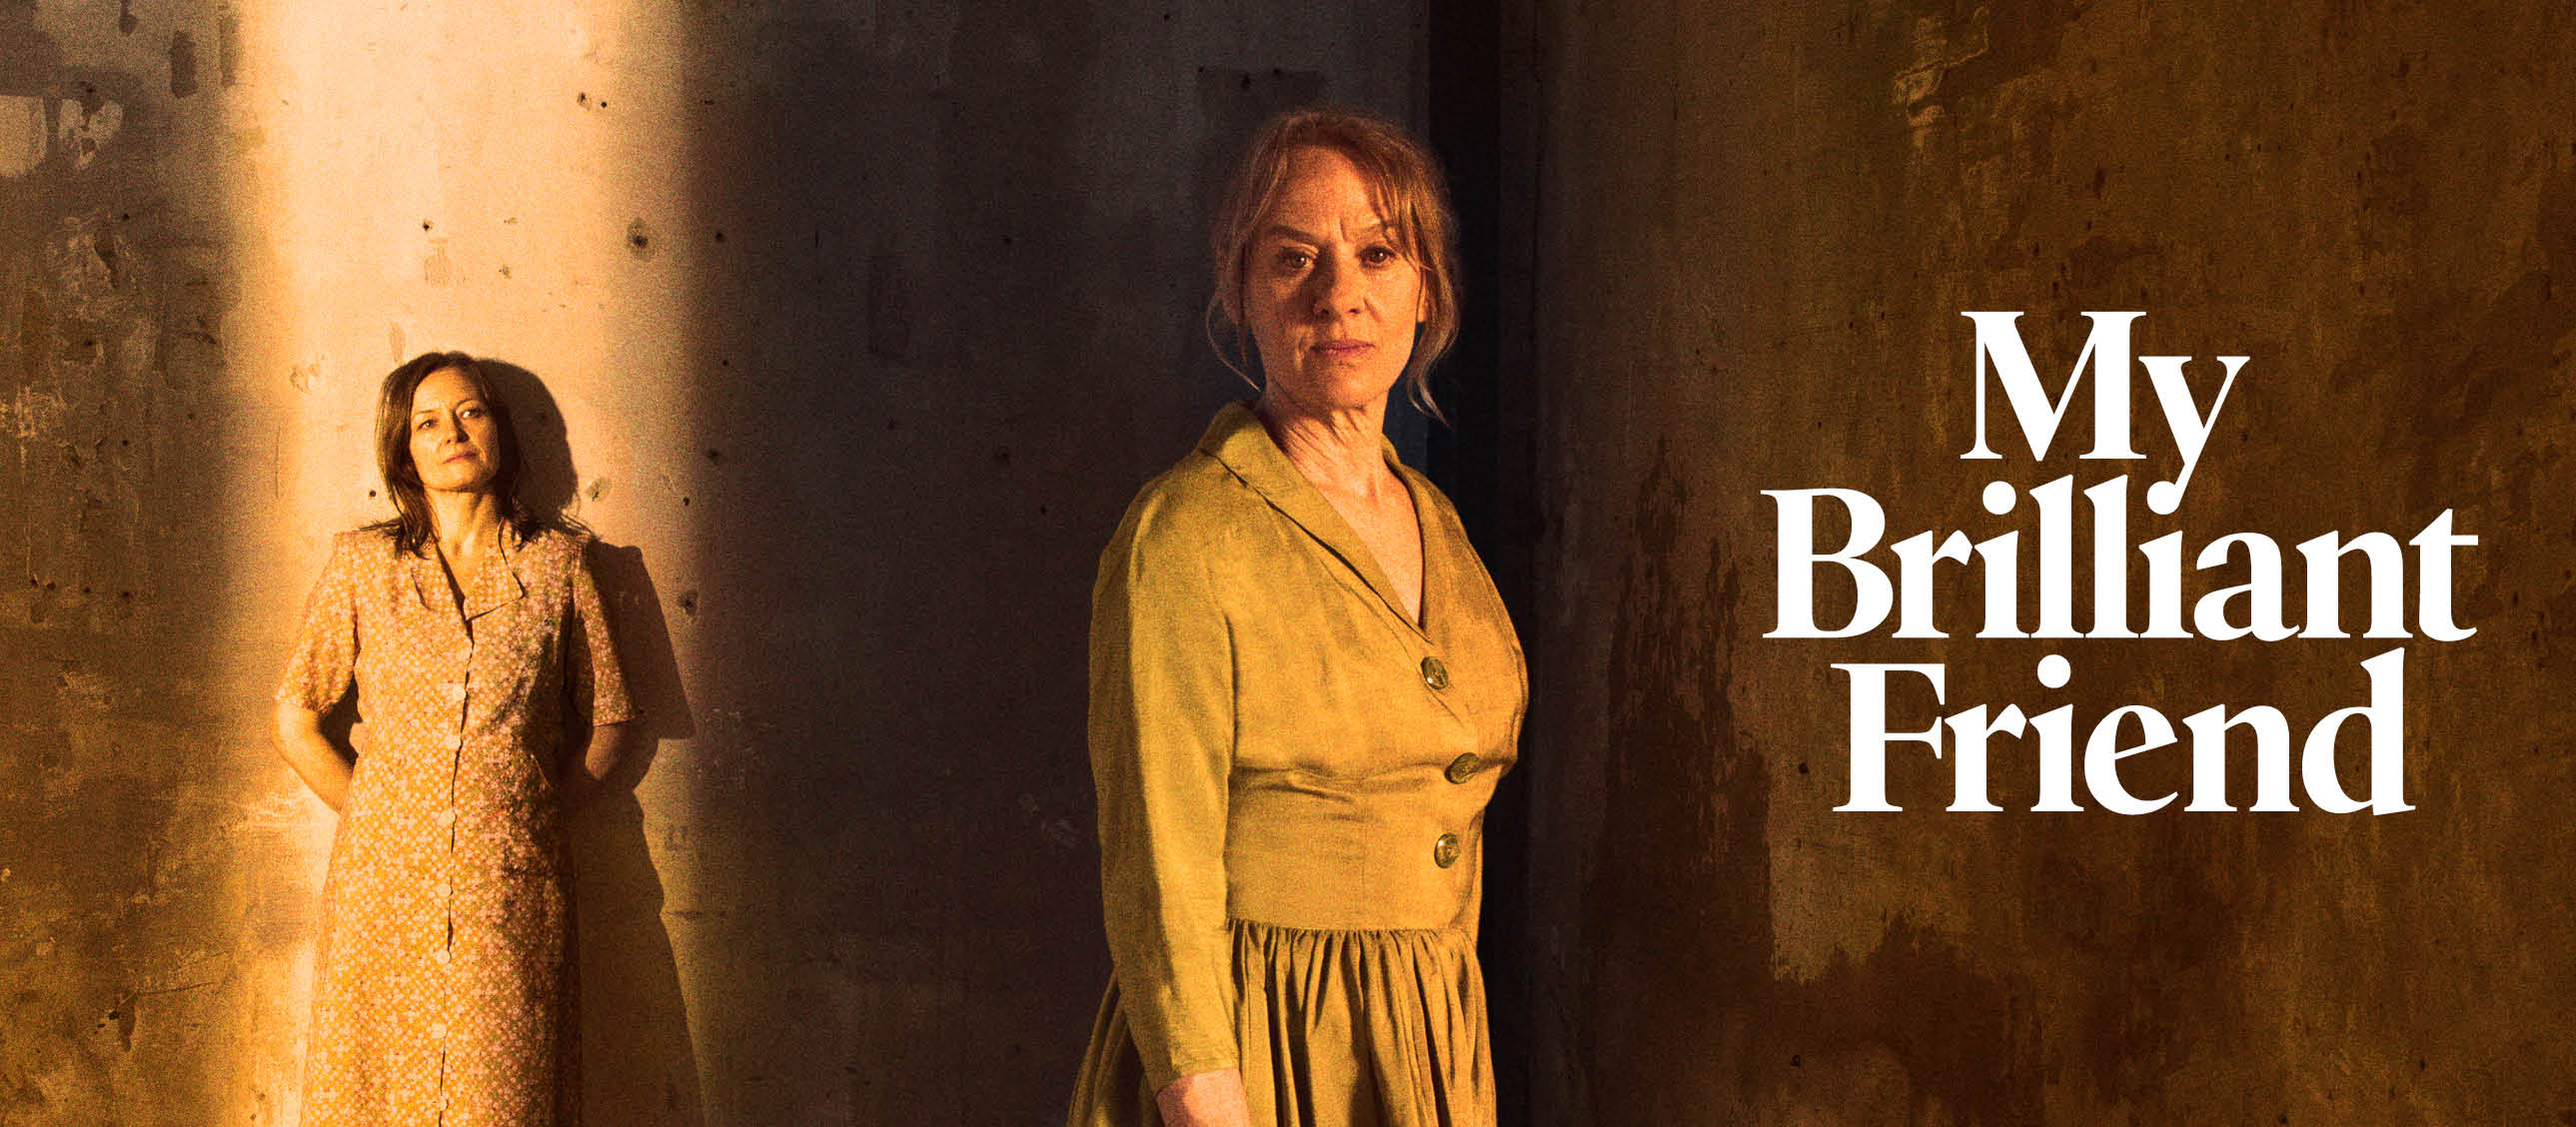 My Brilliant Friend poster with photo of Catherine McCormack and Niamh Cusack